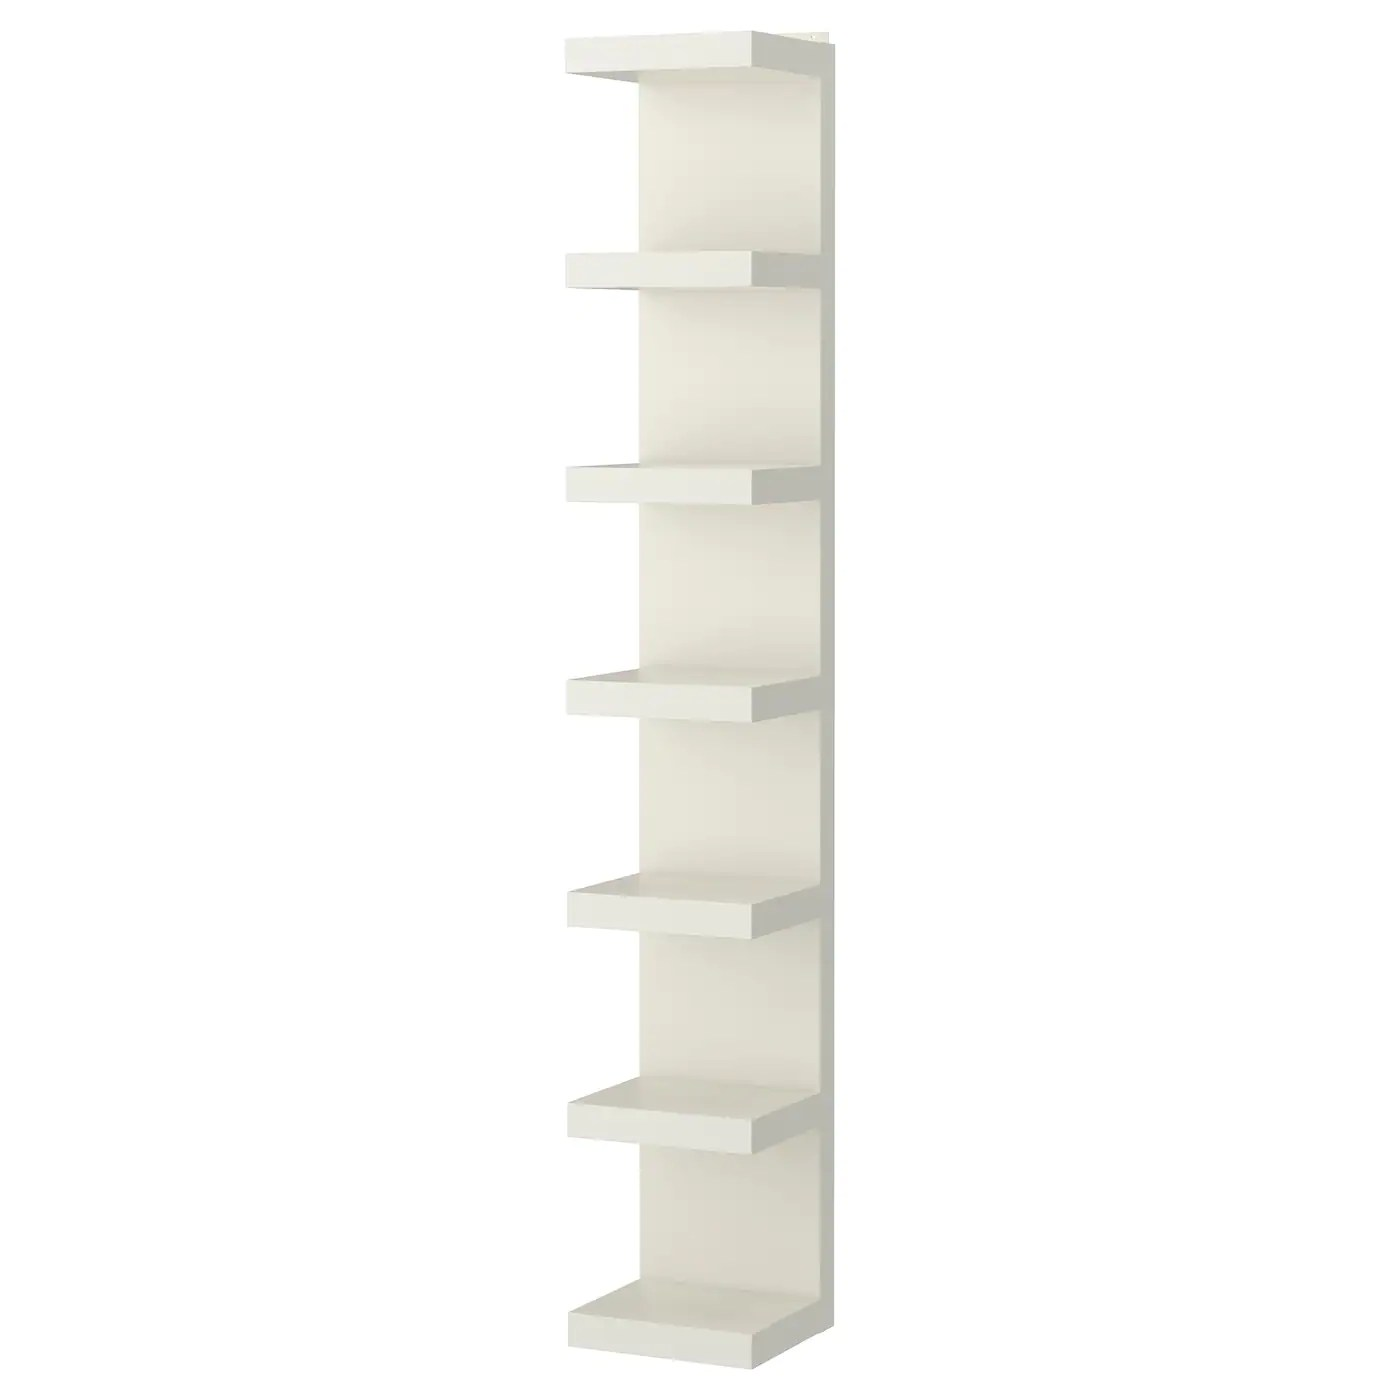 Lack Wall Shelf Unit White 11 3 4x74 3 4 Ikea